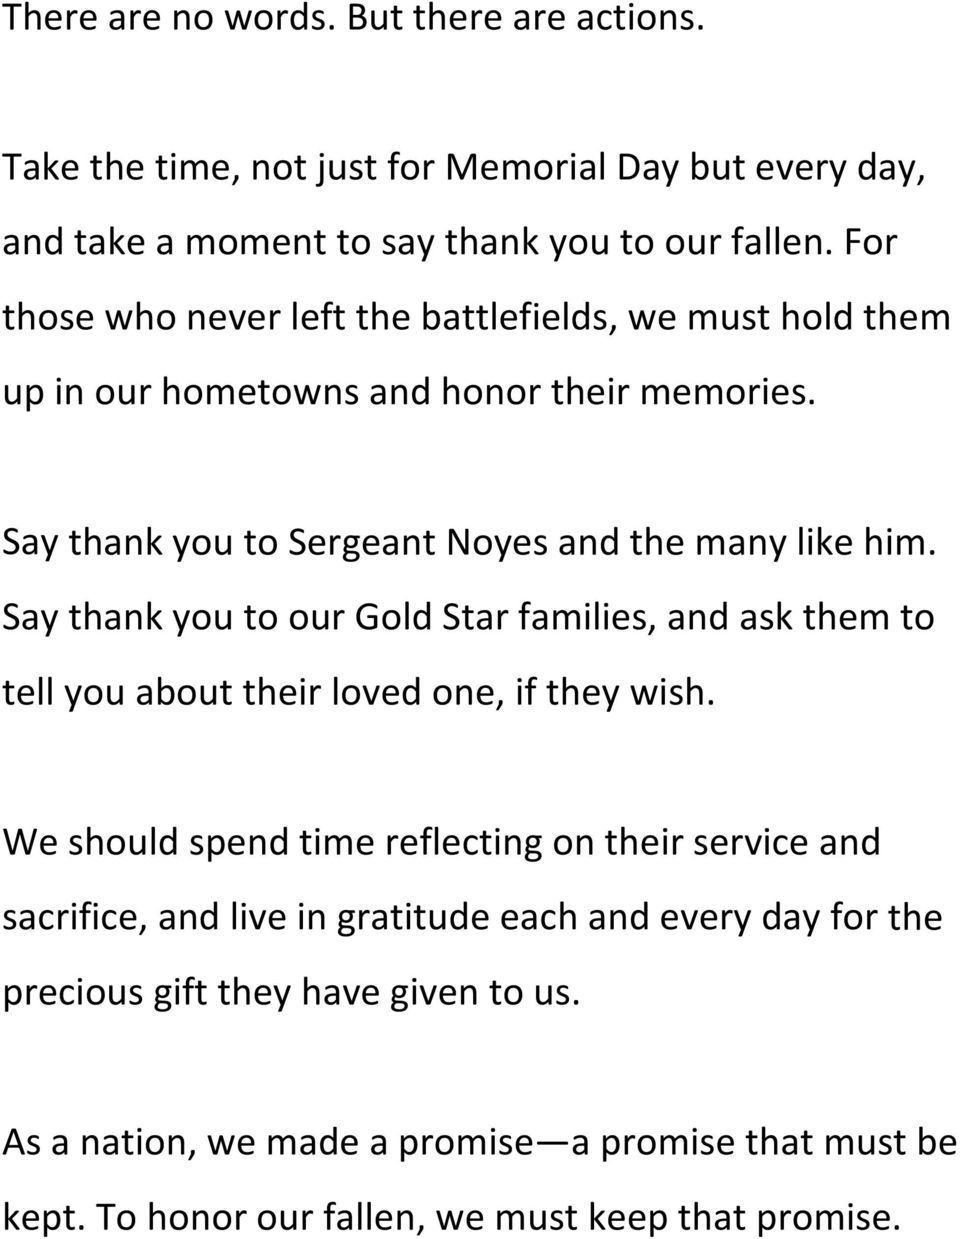 Say thank you to our Gold Star families, and ask them to tell you about their loved one, if they wish.